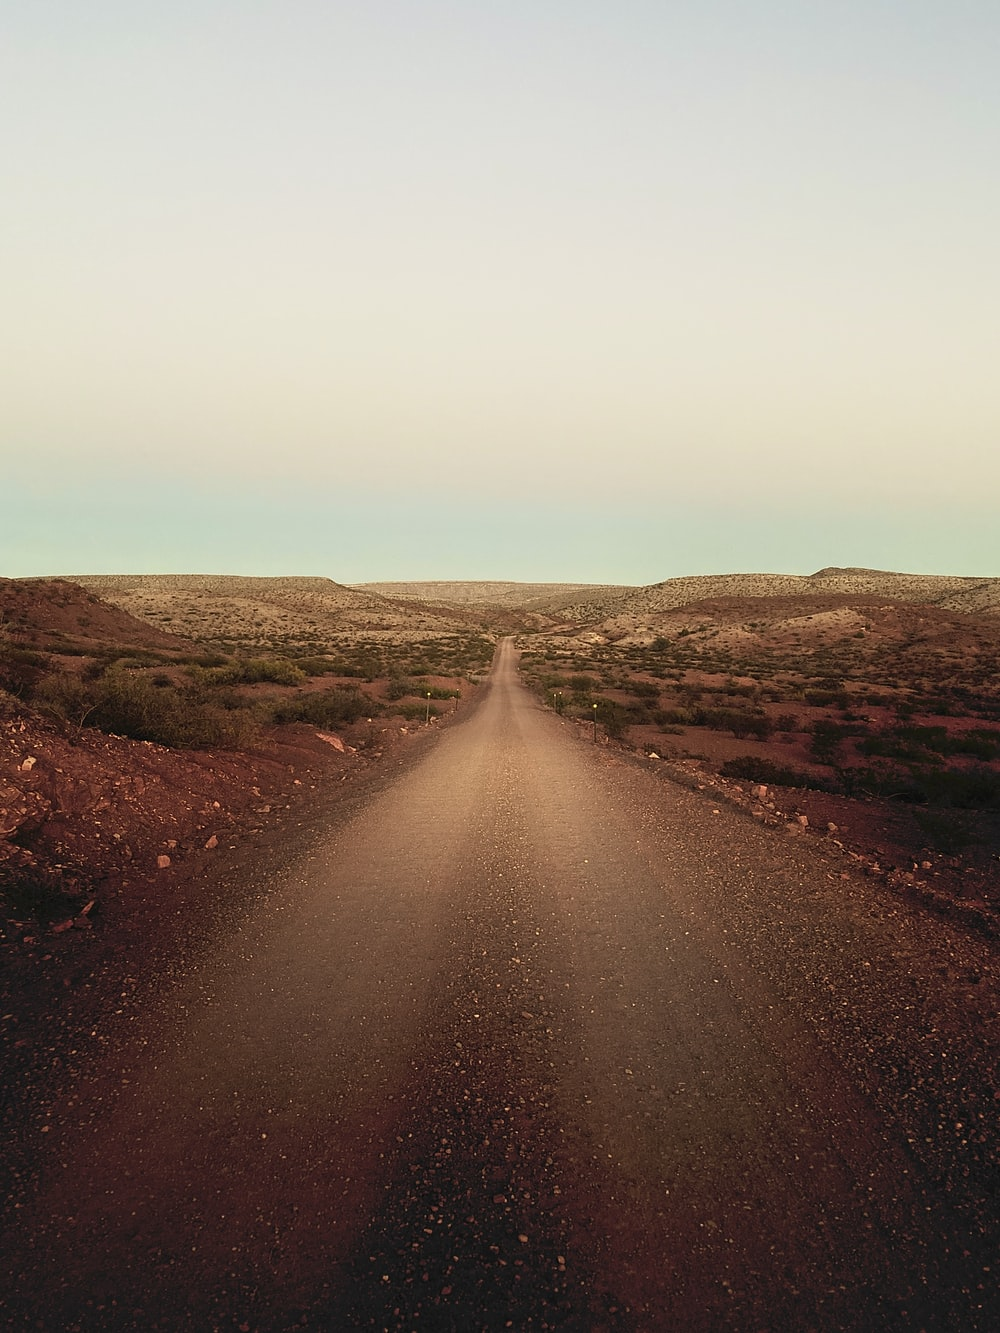 brown dirt road with mountains at distance